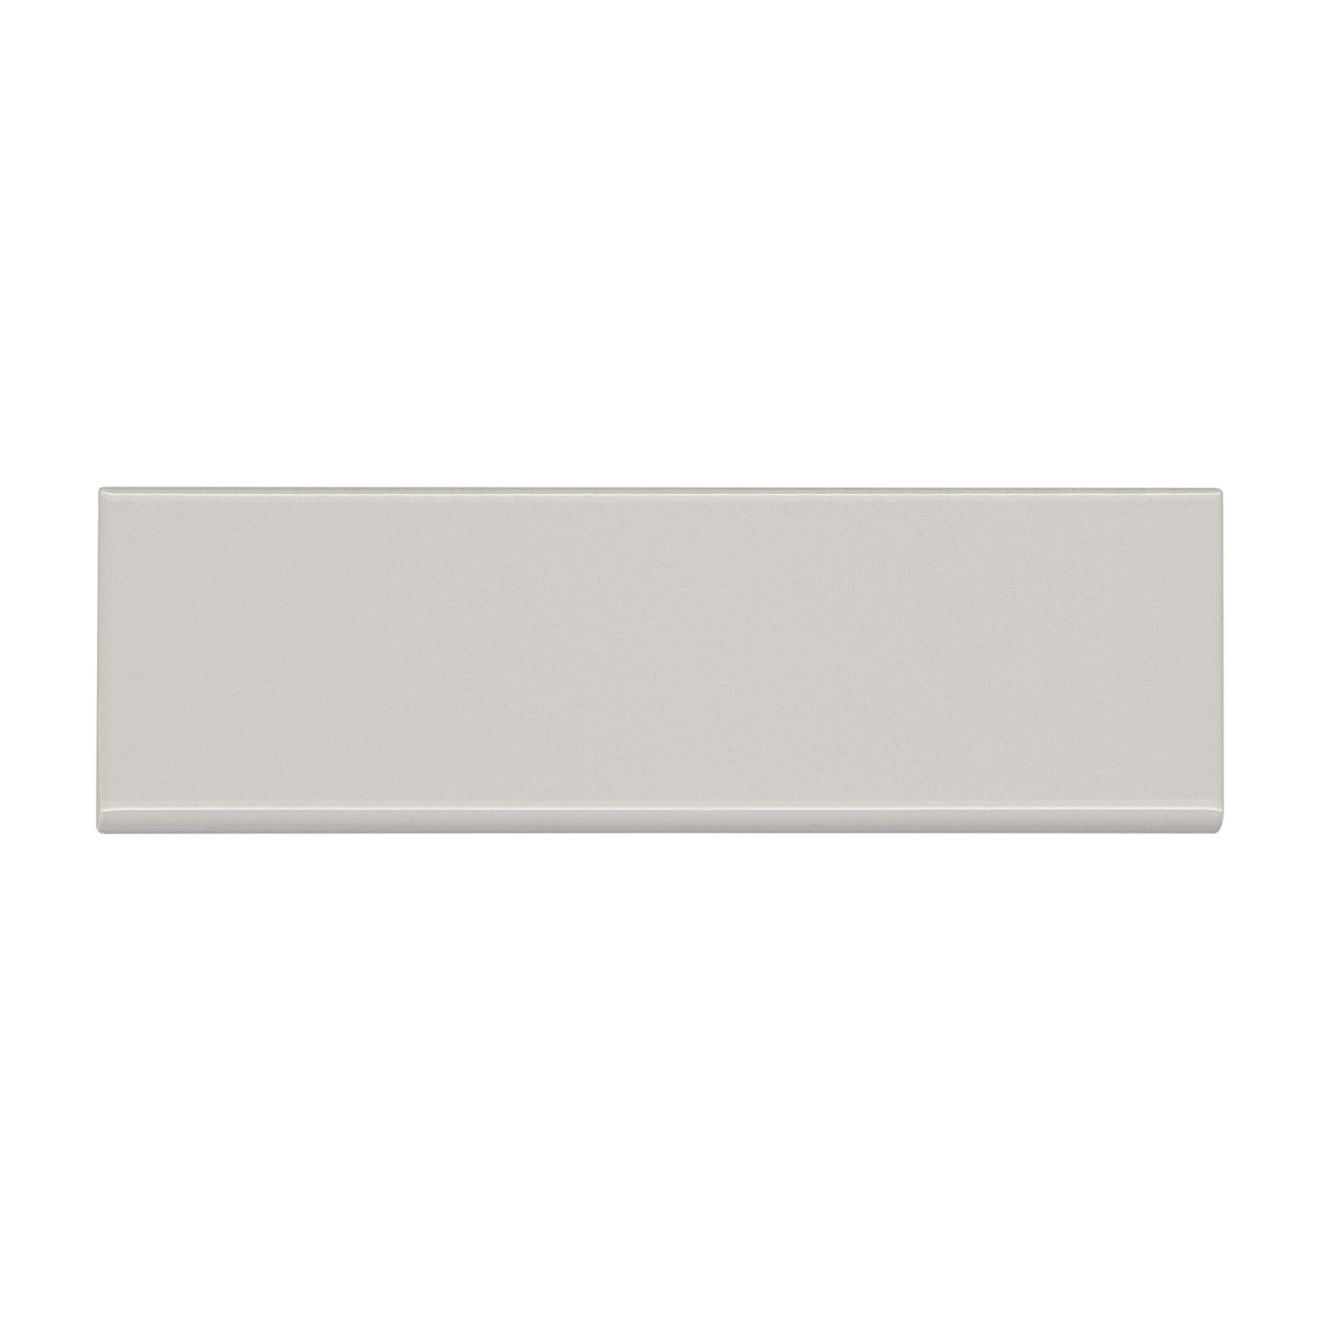 "Traditions 3"" x 10"" Trim in Tender Gray"